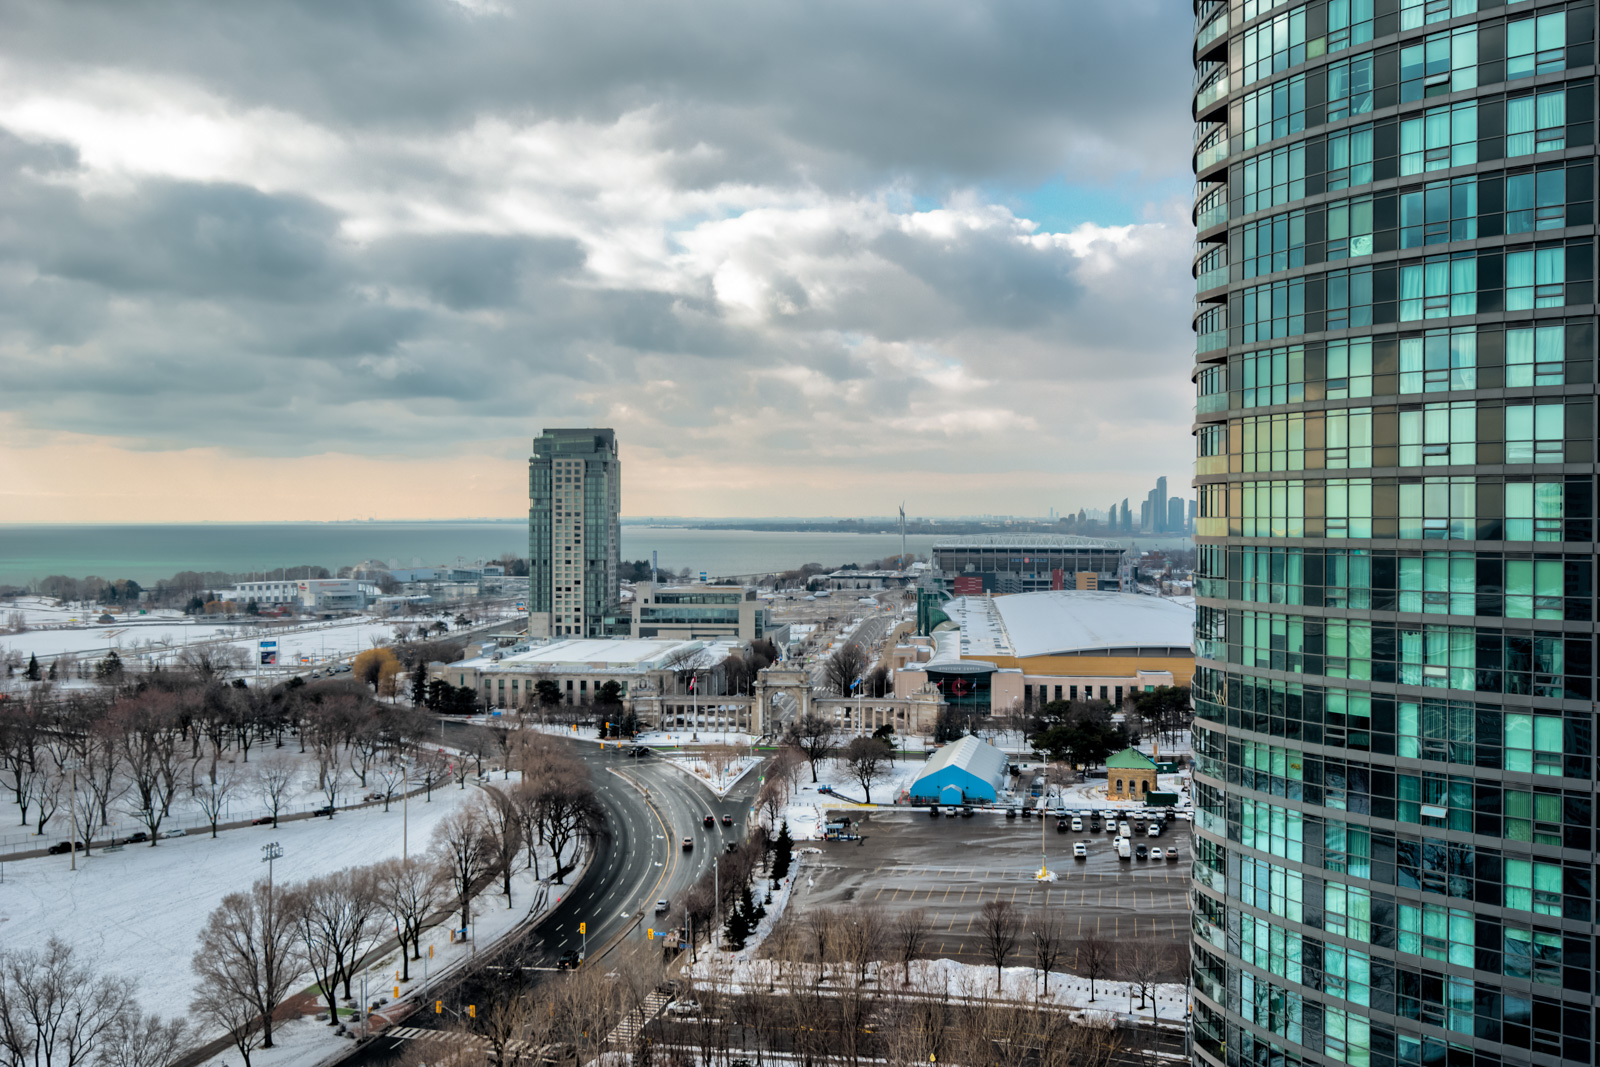 Daytime view of Lake Ontario and buildings from 215 Fort York Blvd balcony.